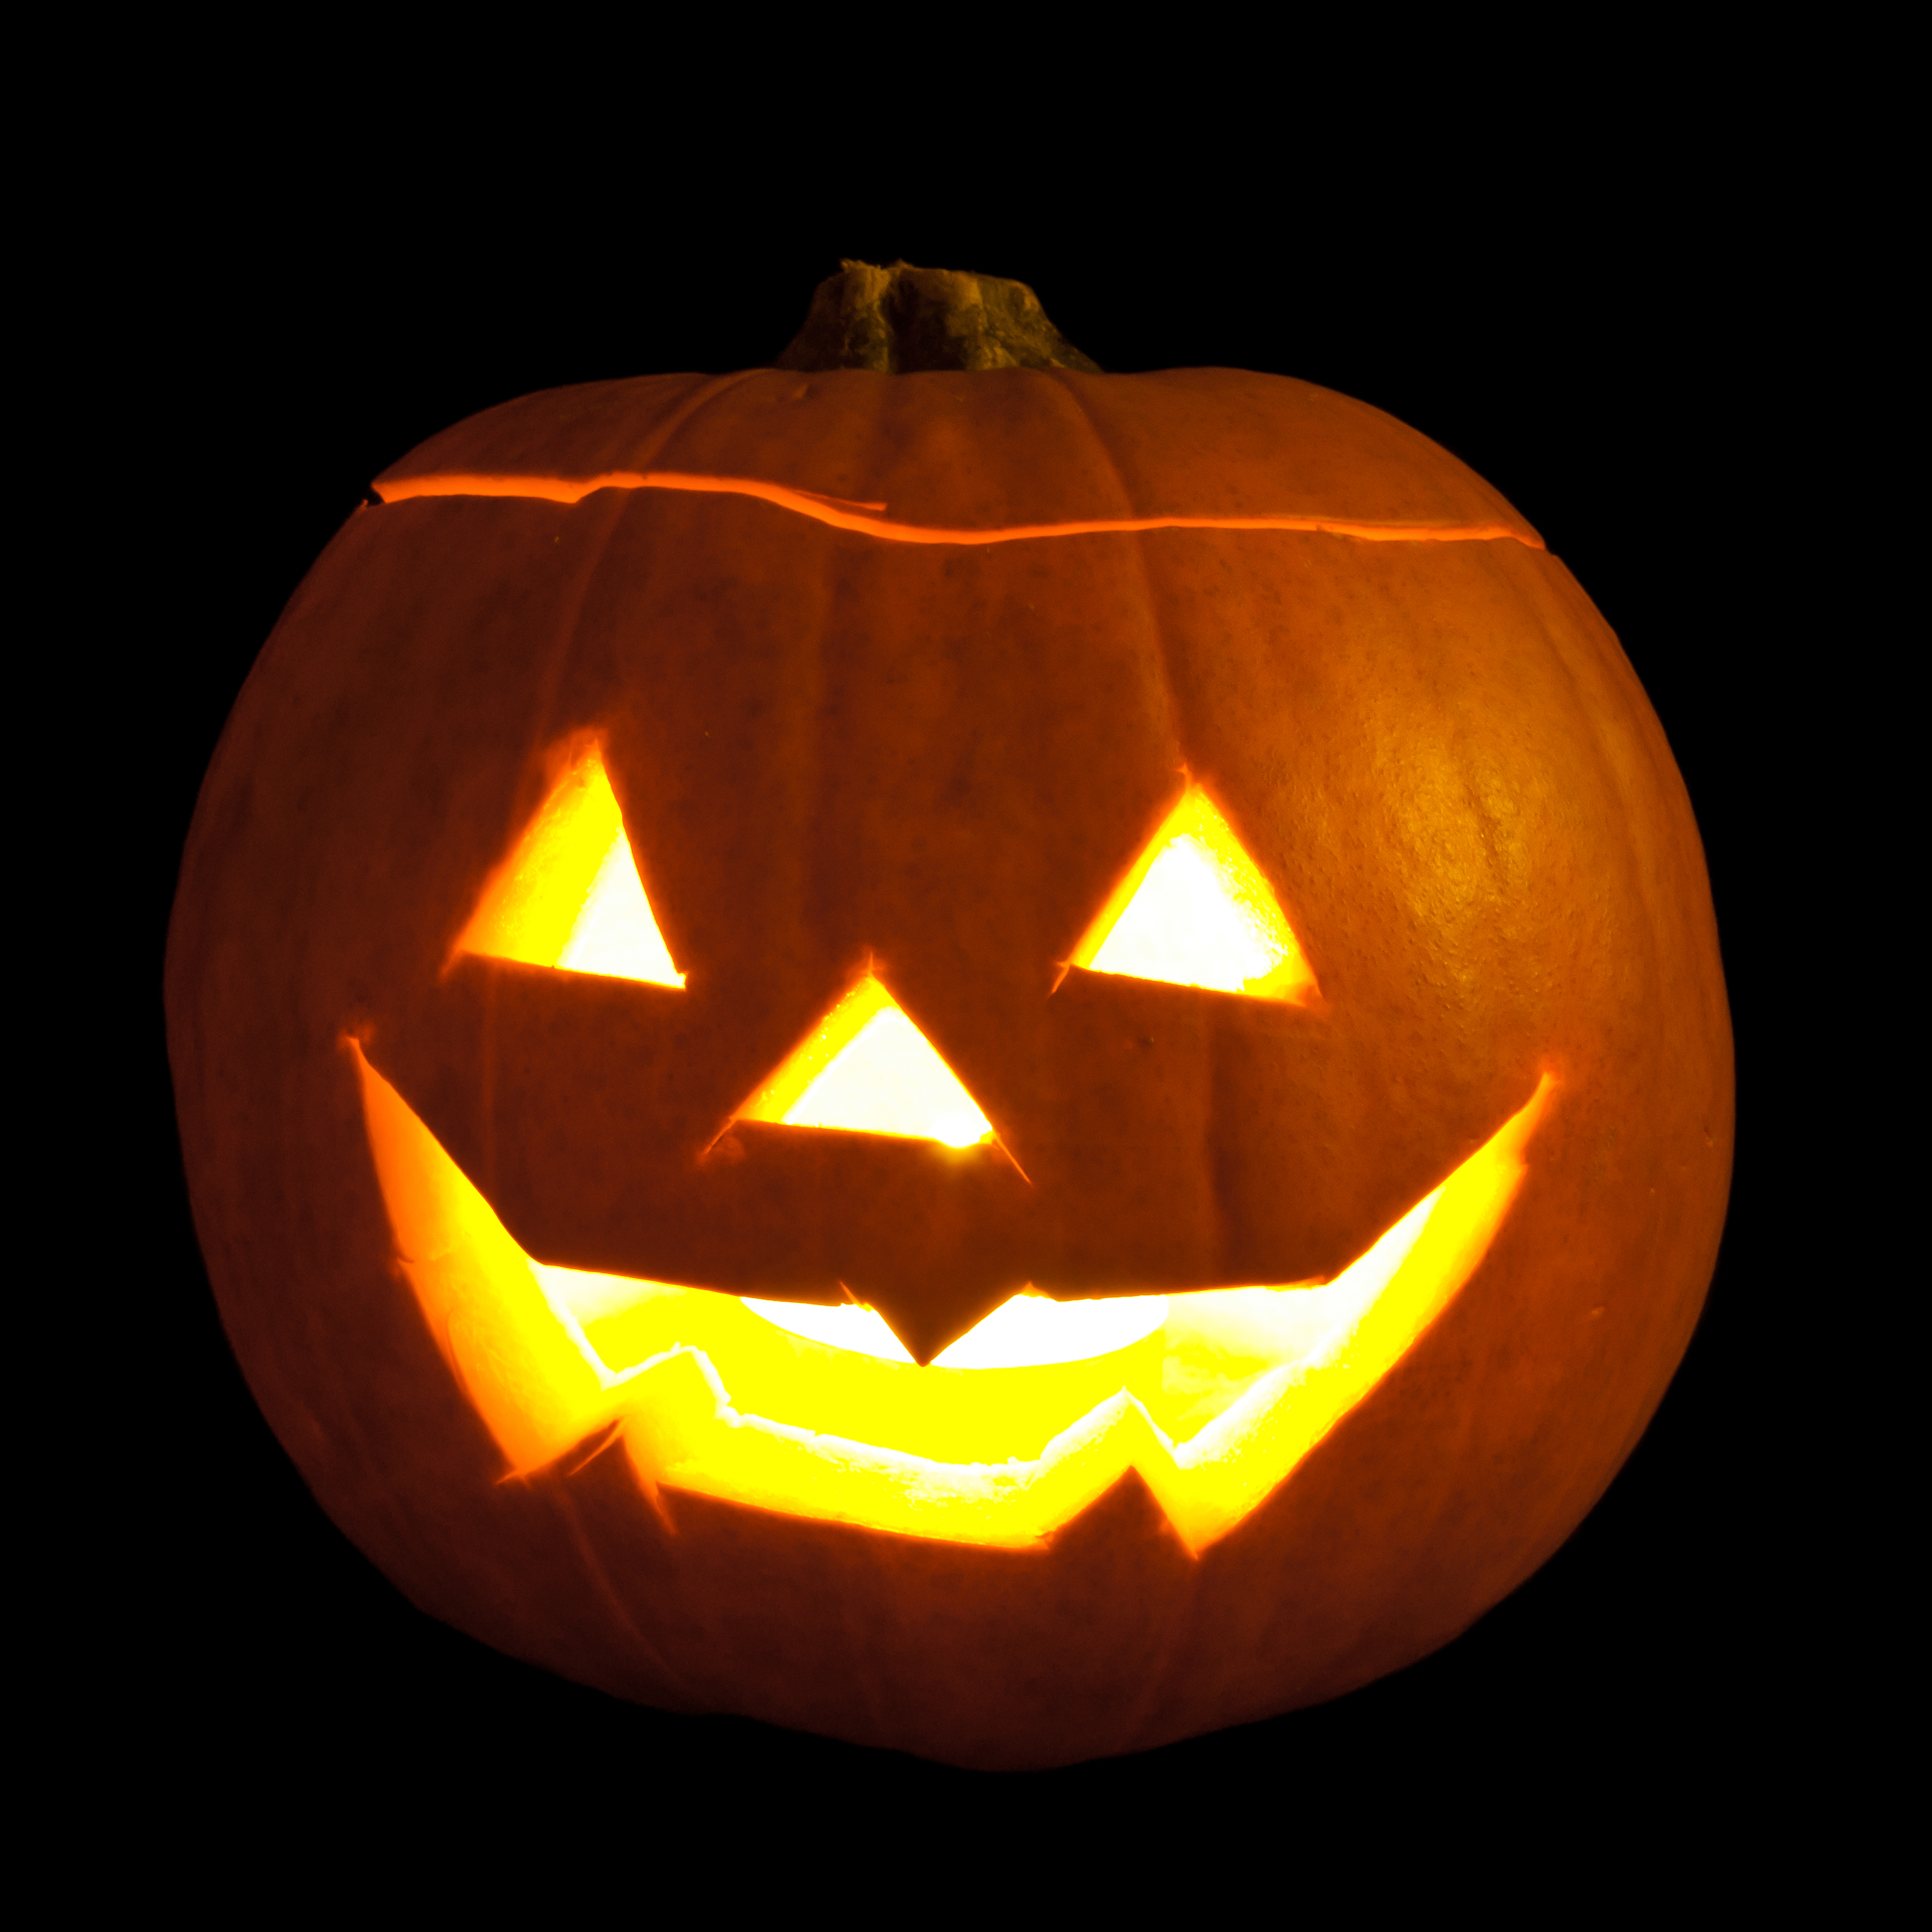 Scary Yet Sustainable: How to Make a Solar-Powered Jack-O-Lantern ...